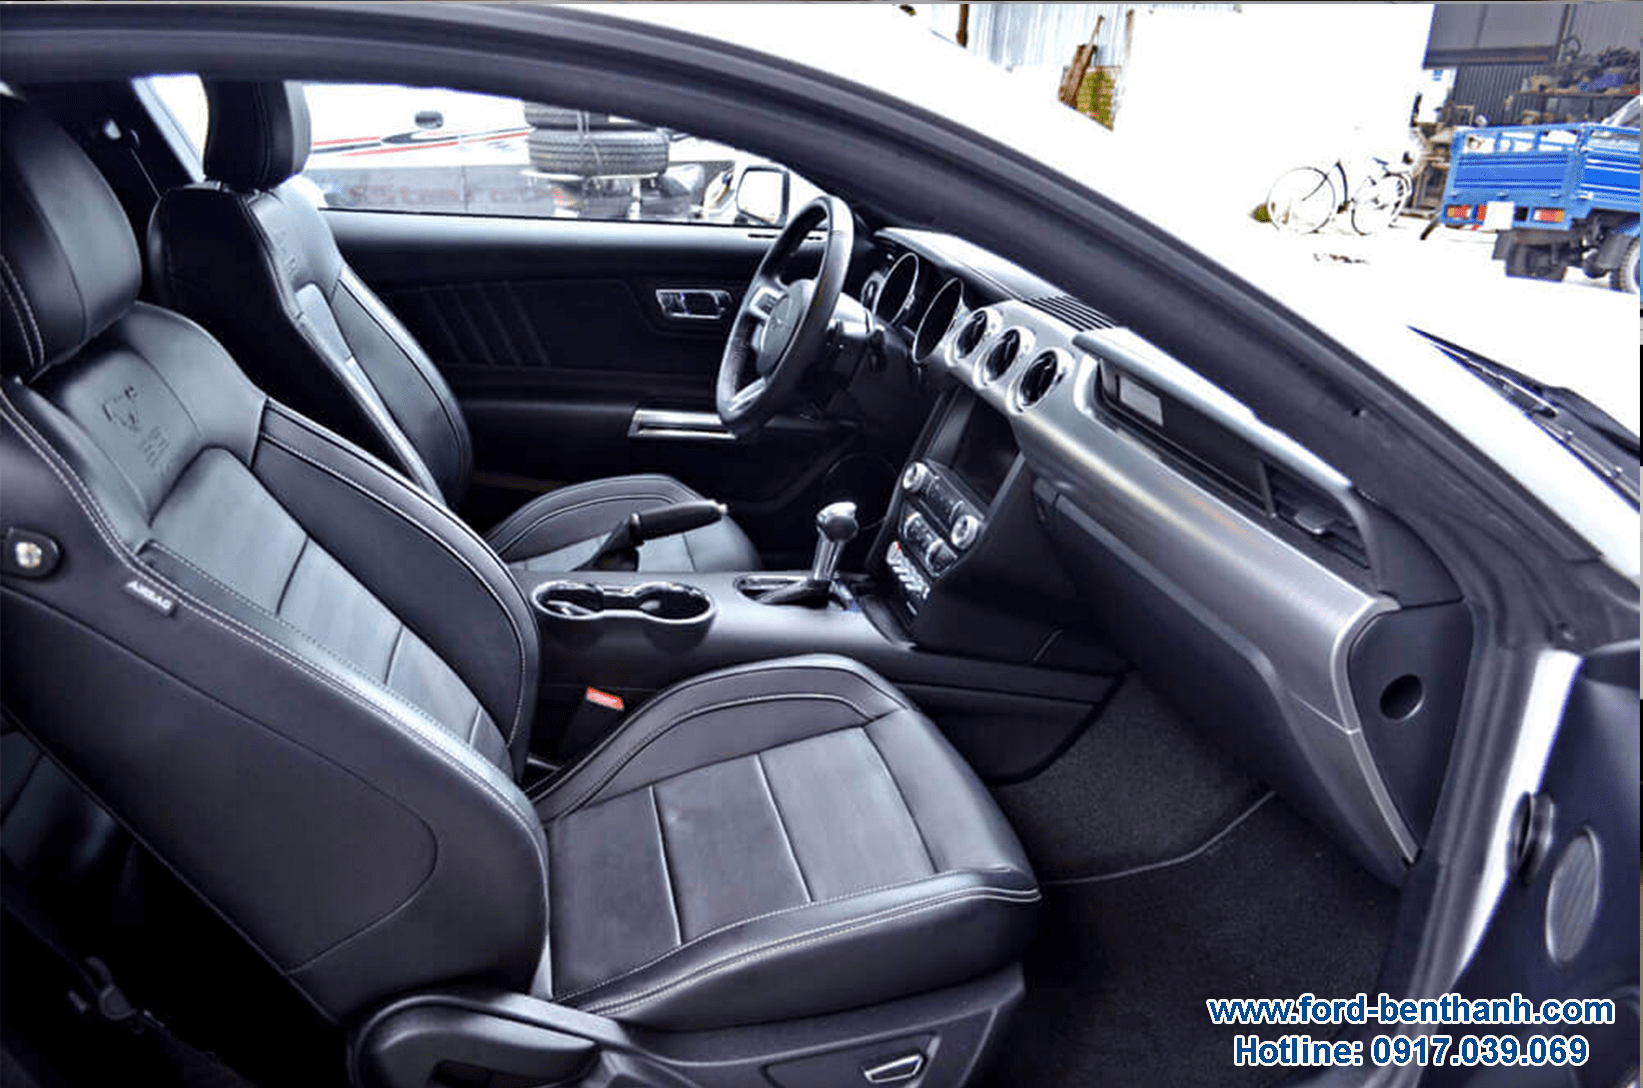 ford-mustang-ford-benthanh-0917039069-5